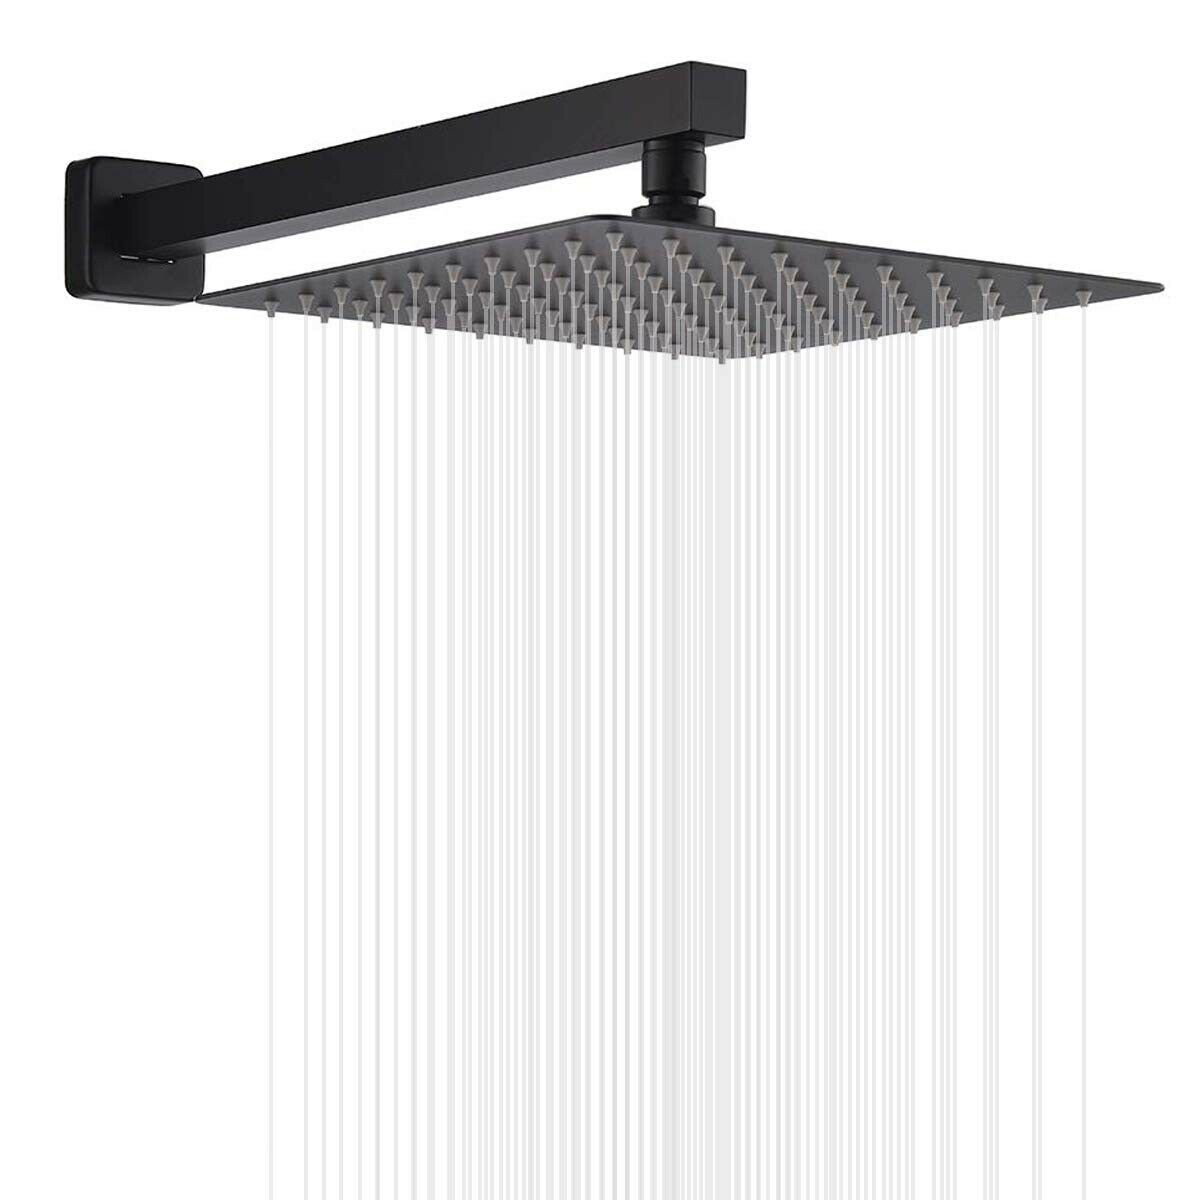 8 Inch Rainfall Shower Head In Matte Black With Shower Arm Wall